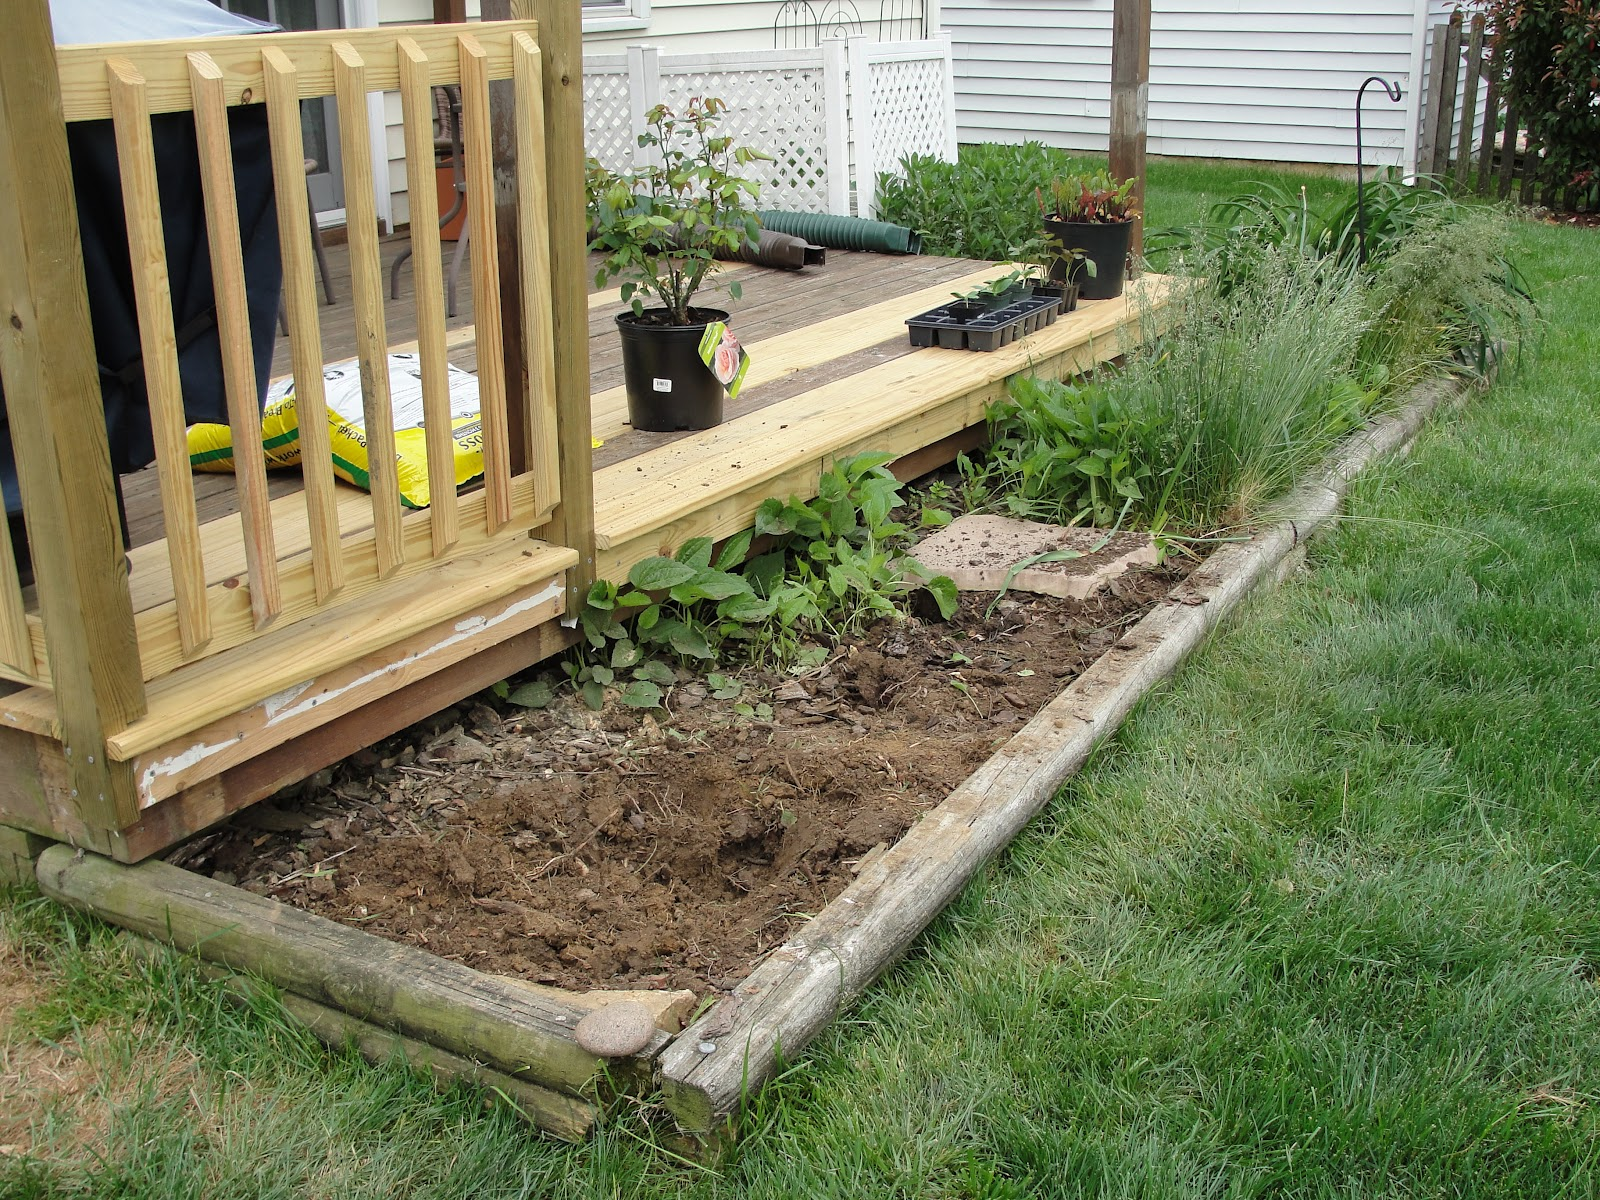 Box Steps Plans For Decks : Lessons from the garden building a box step for deck